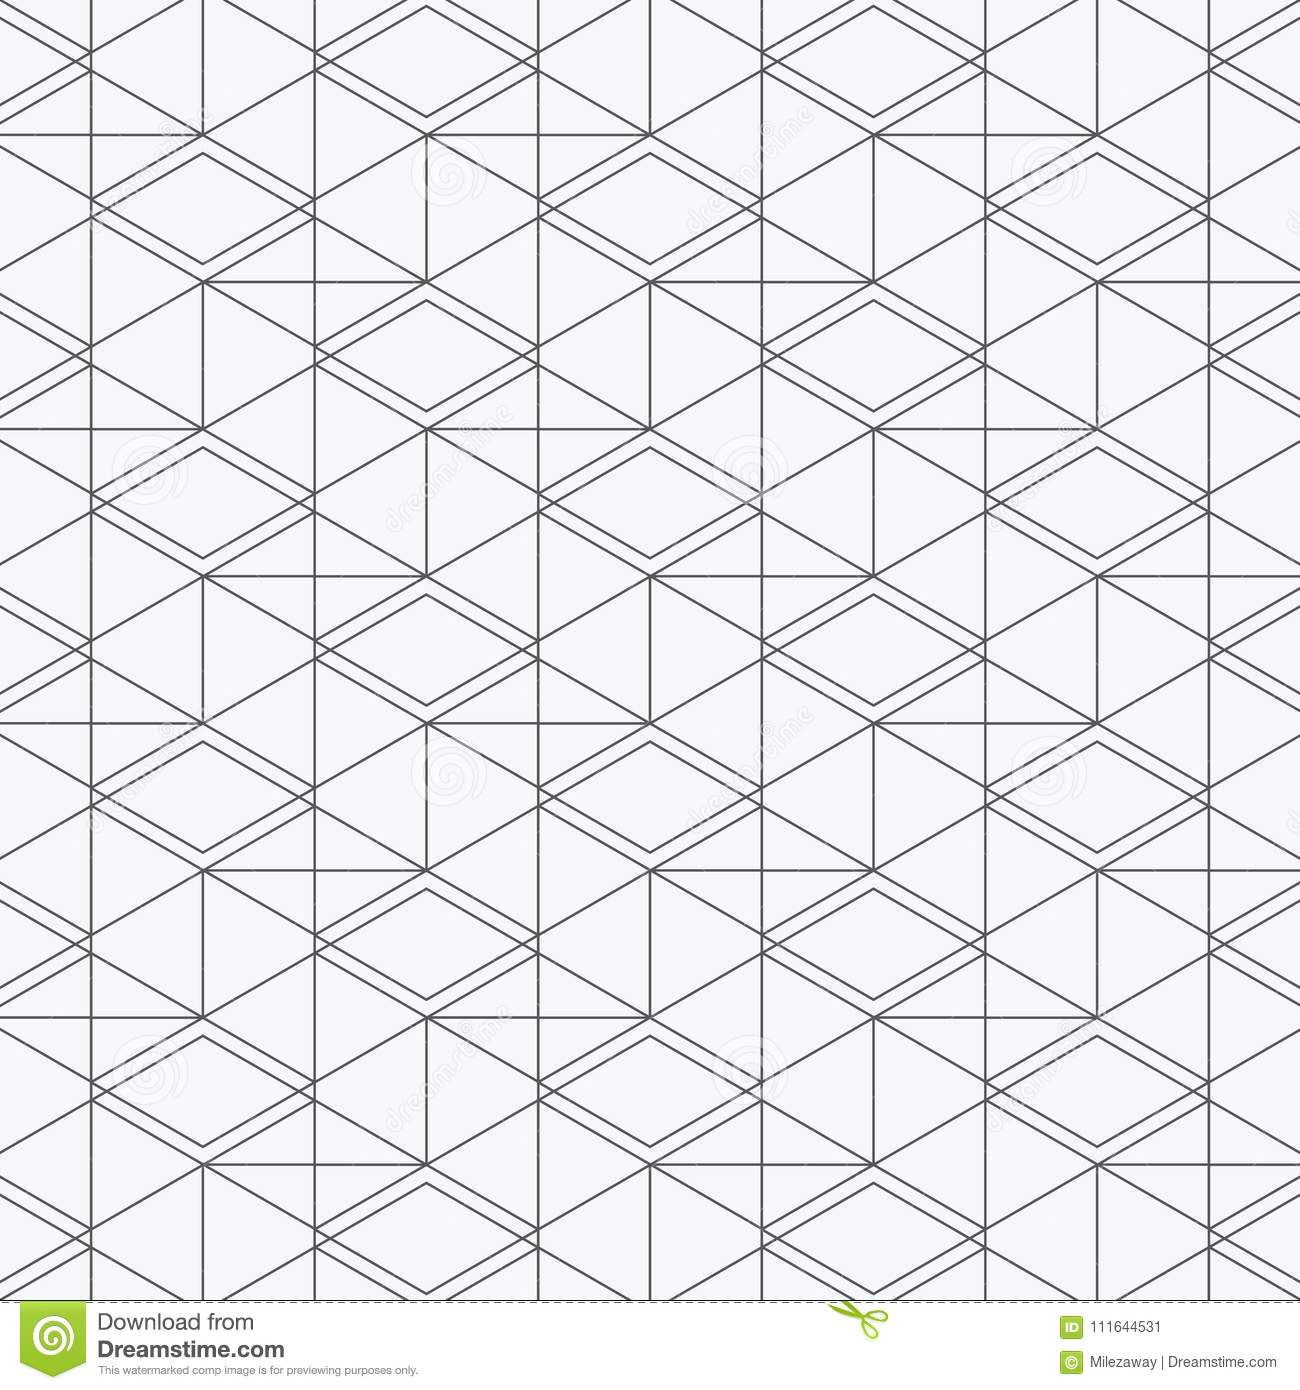 geometric vector pattern, repeating linear square diamond shape rhombus. graphic clean design for fabric, event